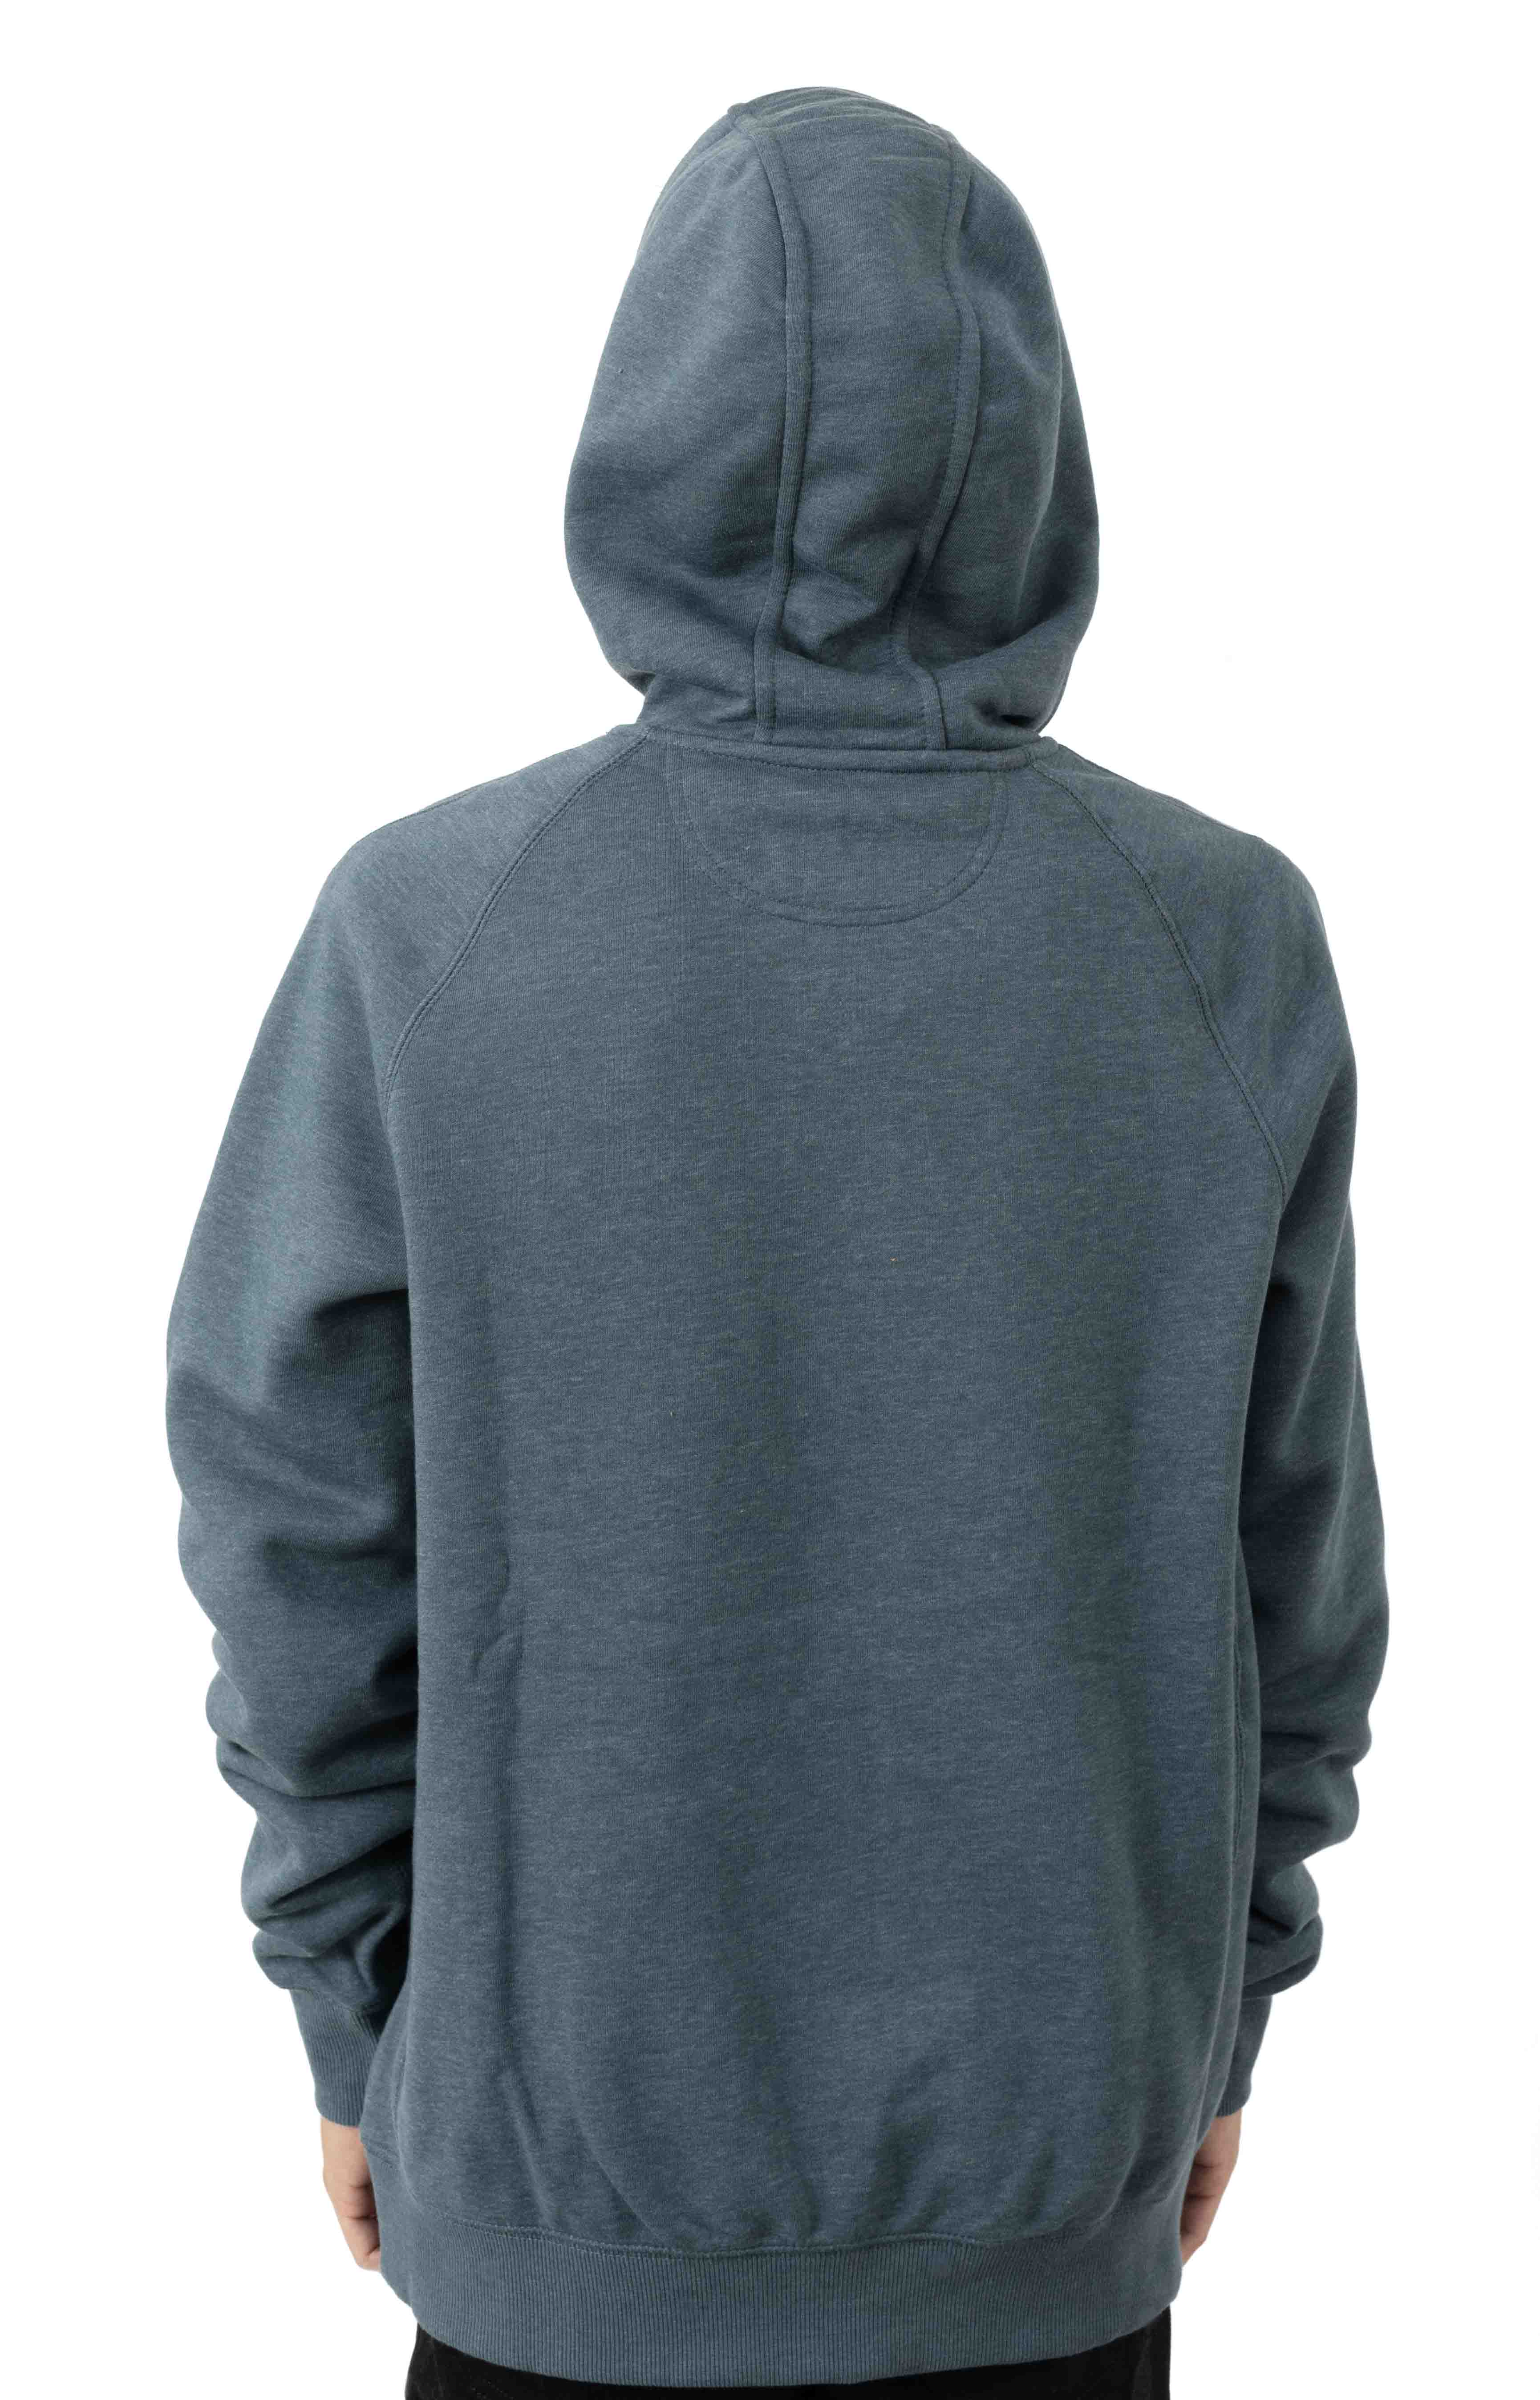 (103873) Force Delmont Signature Graphic Pullover Hoodie - Ink Green Heather  3